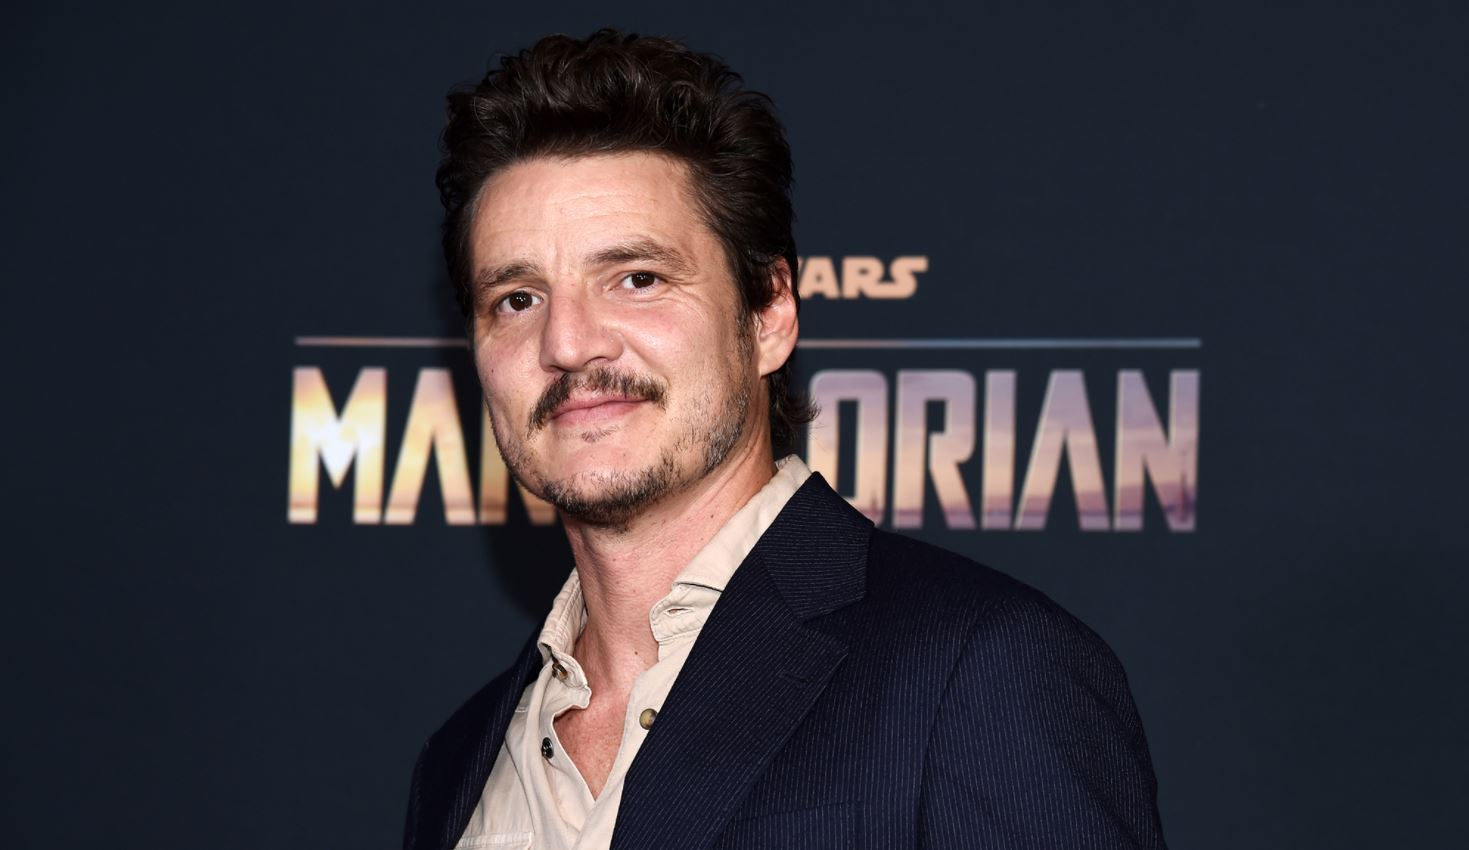 the-mandalorian-star-pedro-pascal-will-play-joel-in-hbos-the-last-of-us-tv-series